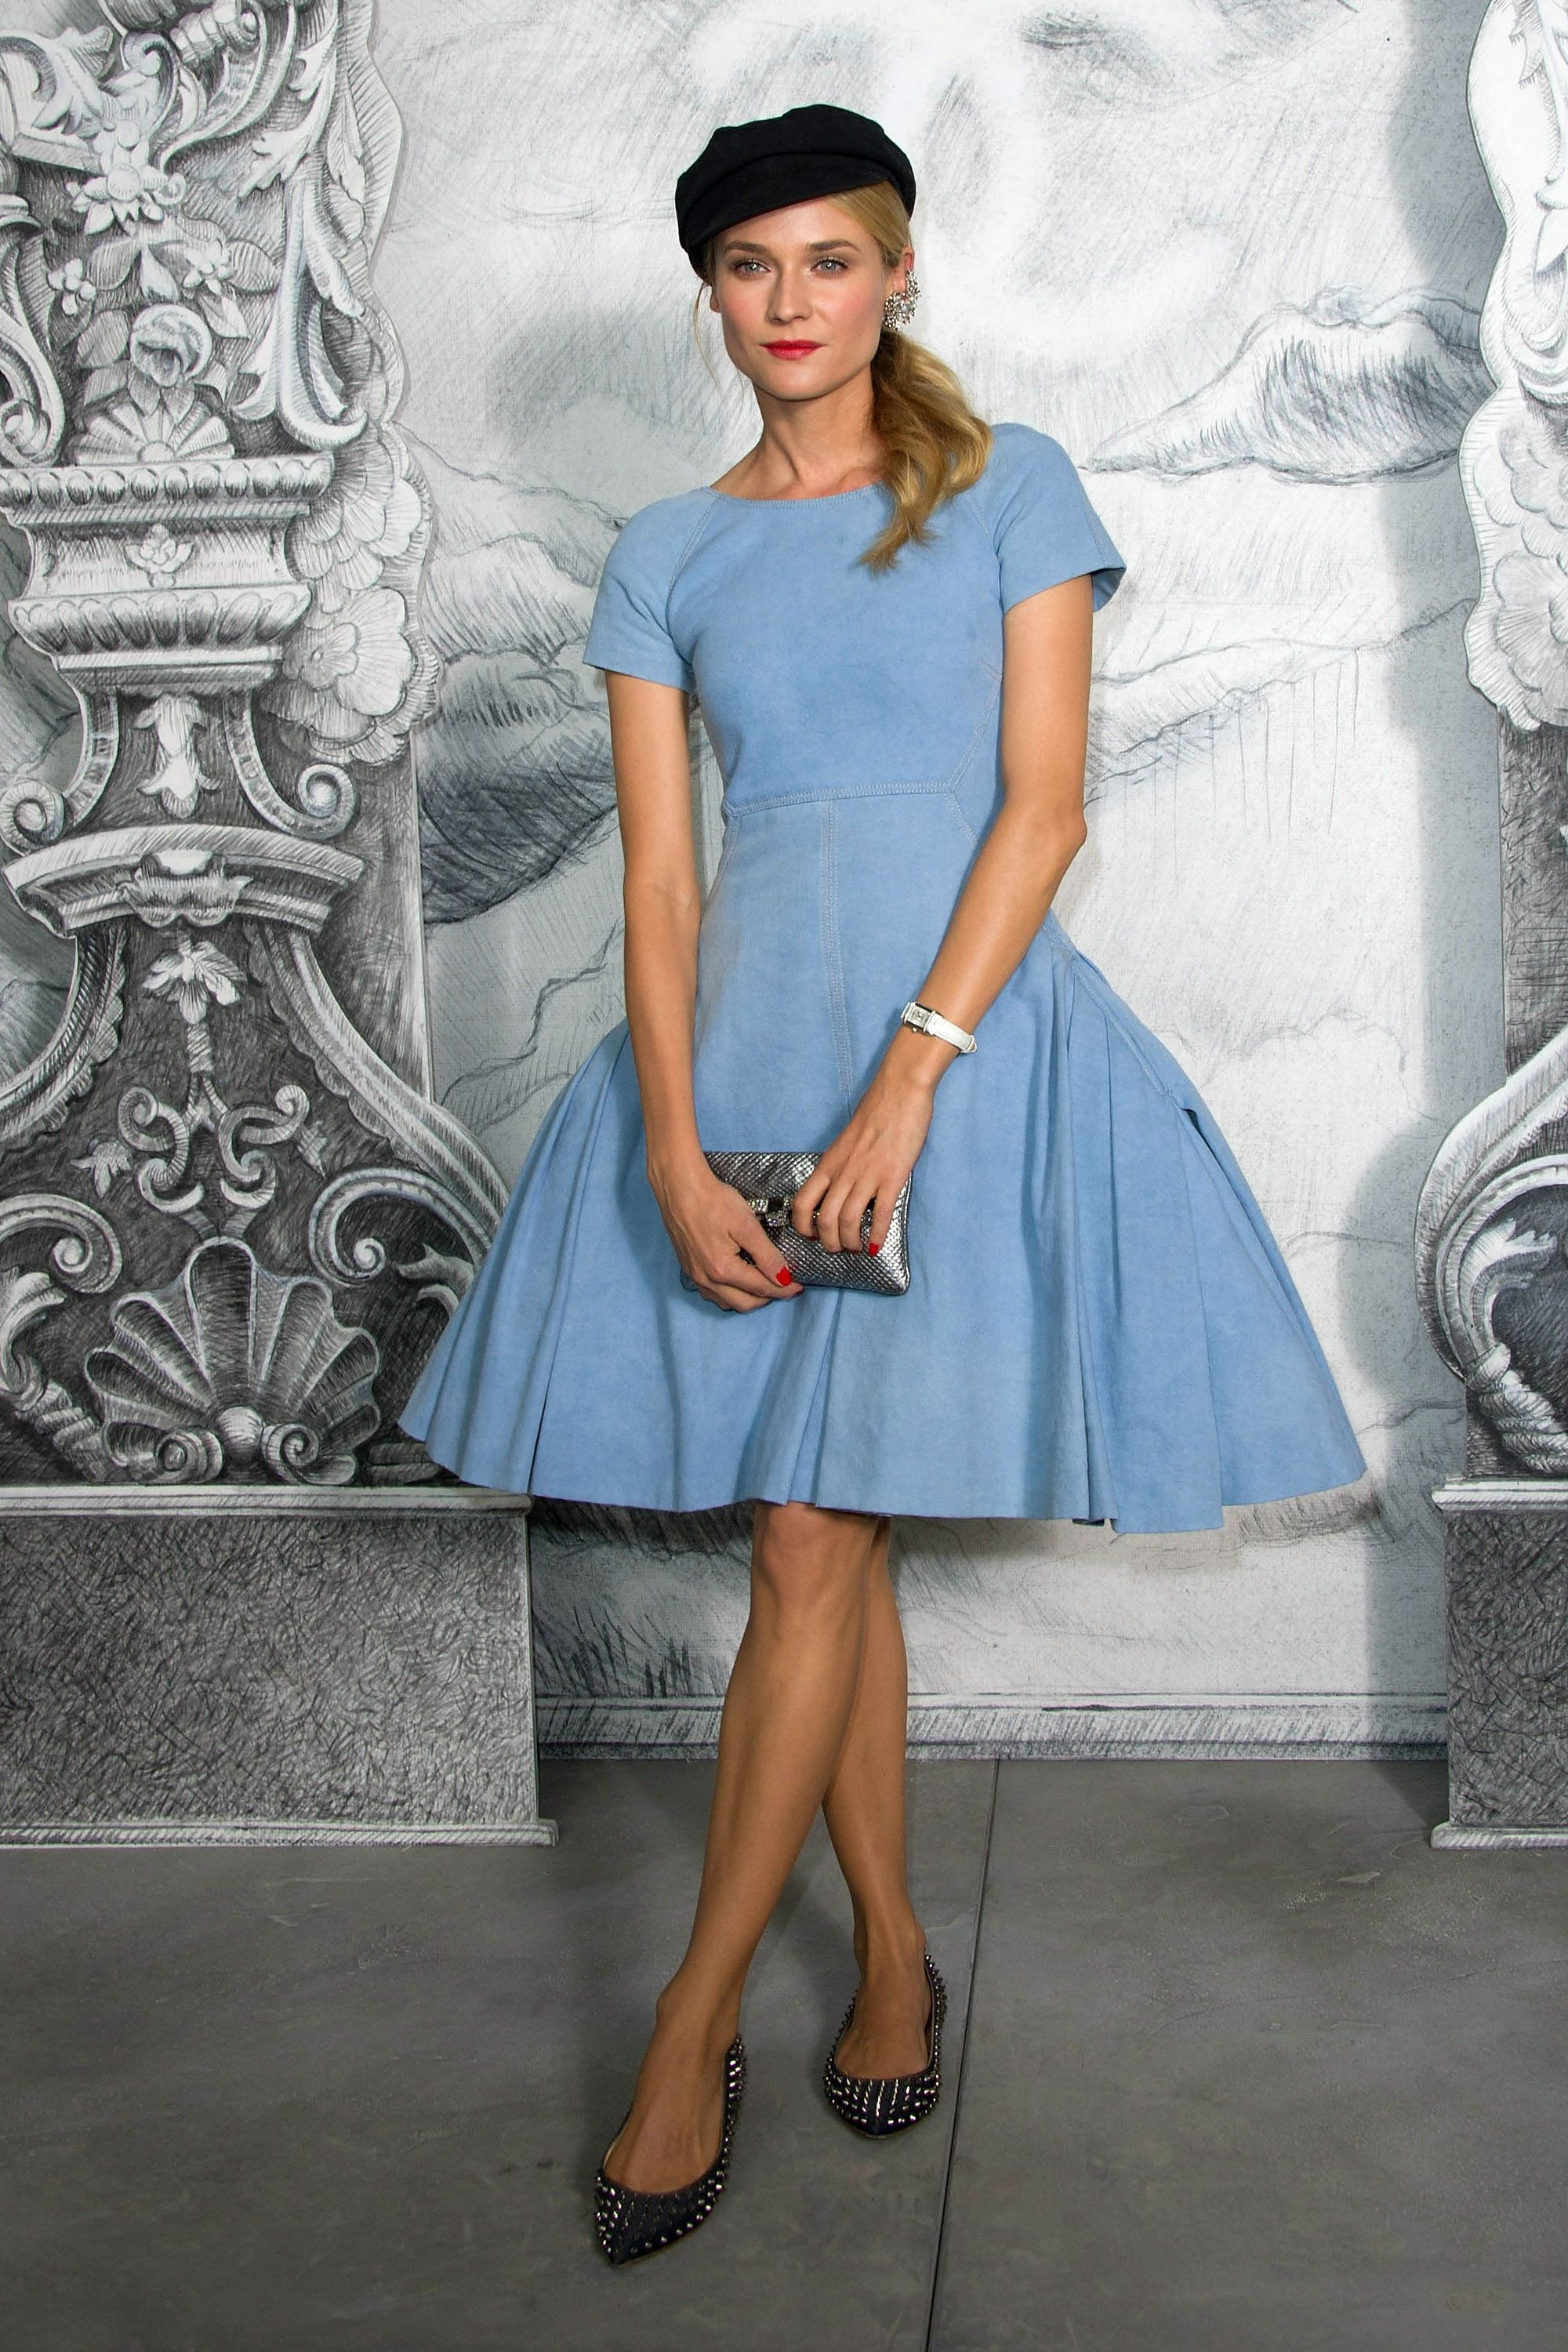 Diane Kruger in Chanel Denim Dress at Chanel Haute Couture Fall Winter  2012-2013 show in Paris 3c2542925c8